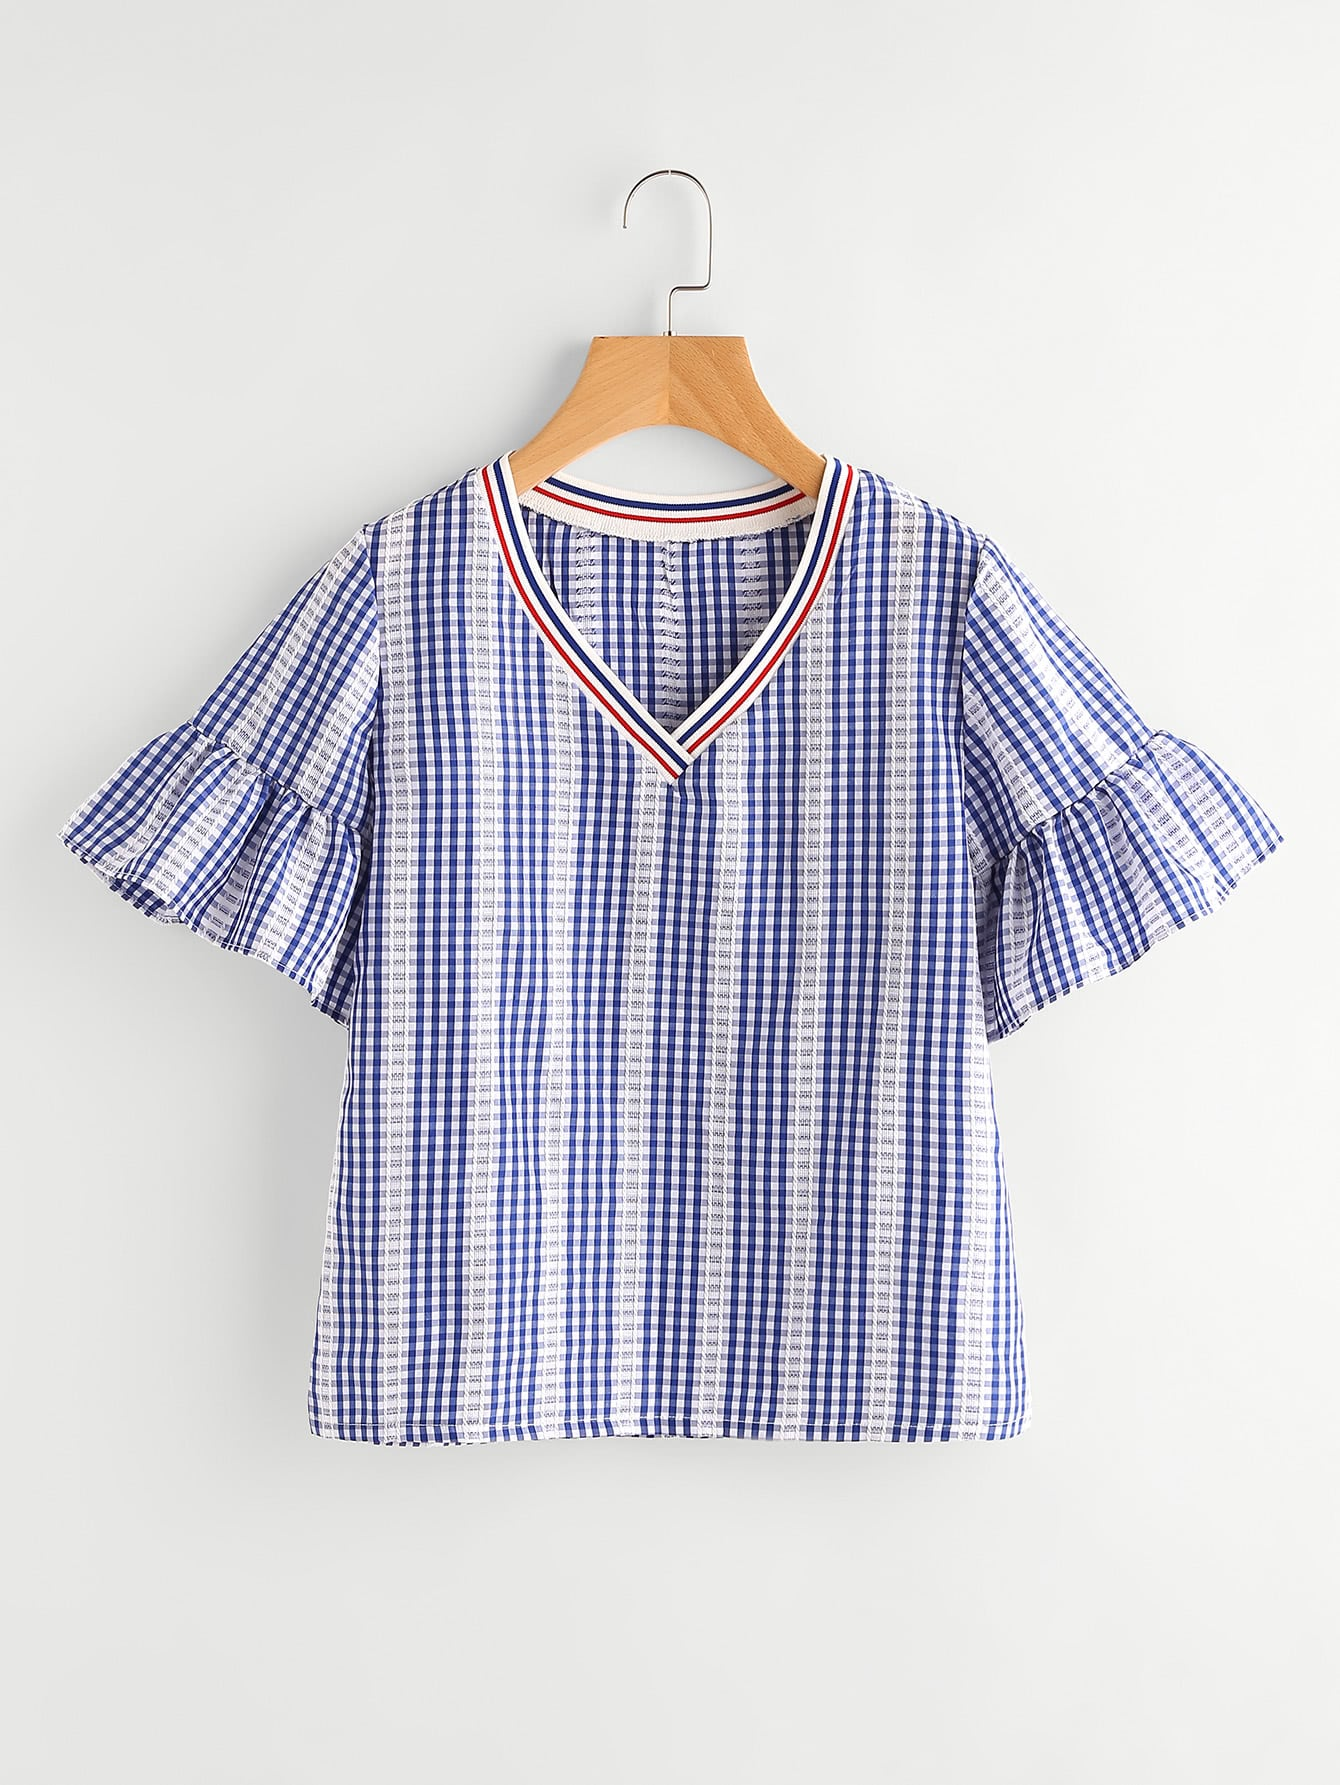 Contrast Striped Trim Frill Cuff Gingham Blouse blouse170630003